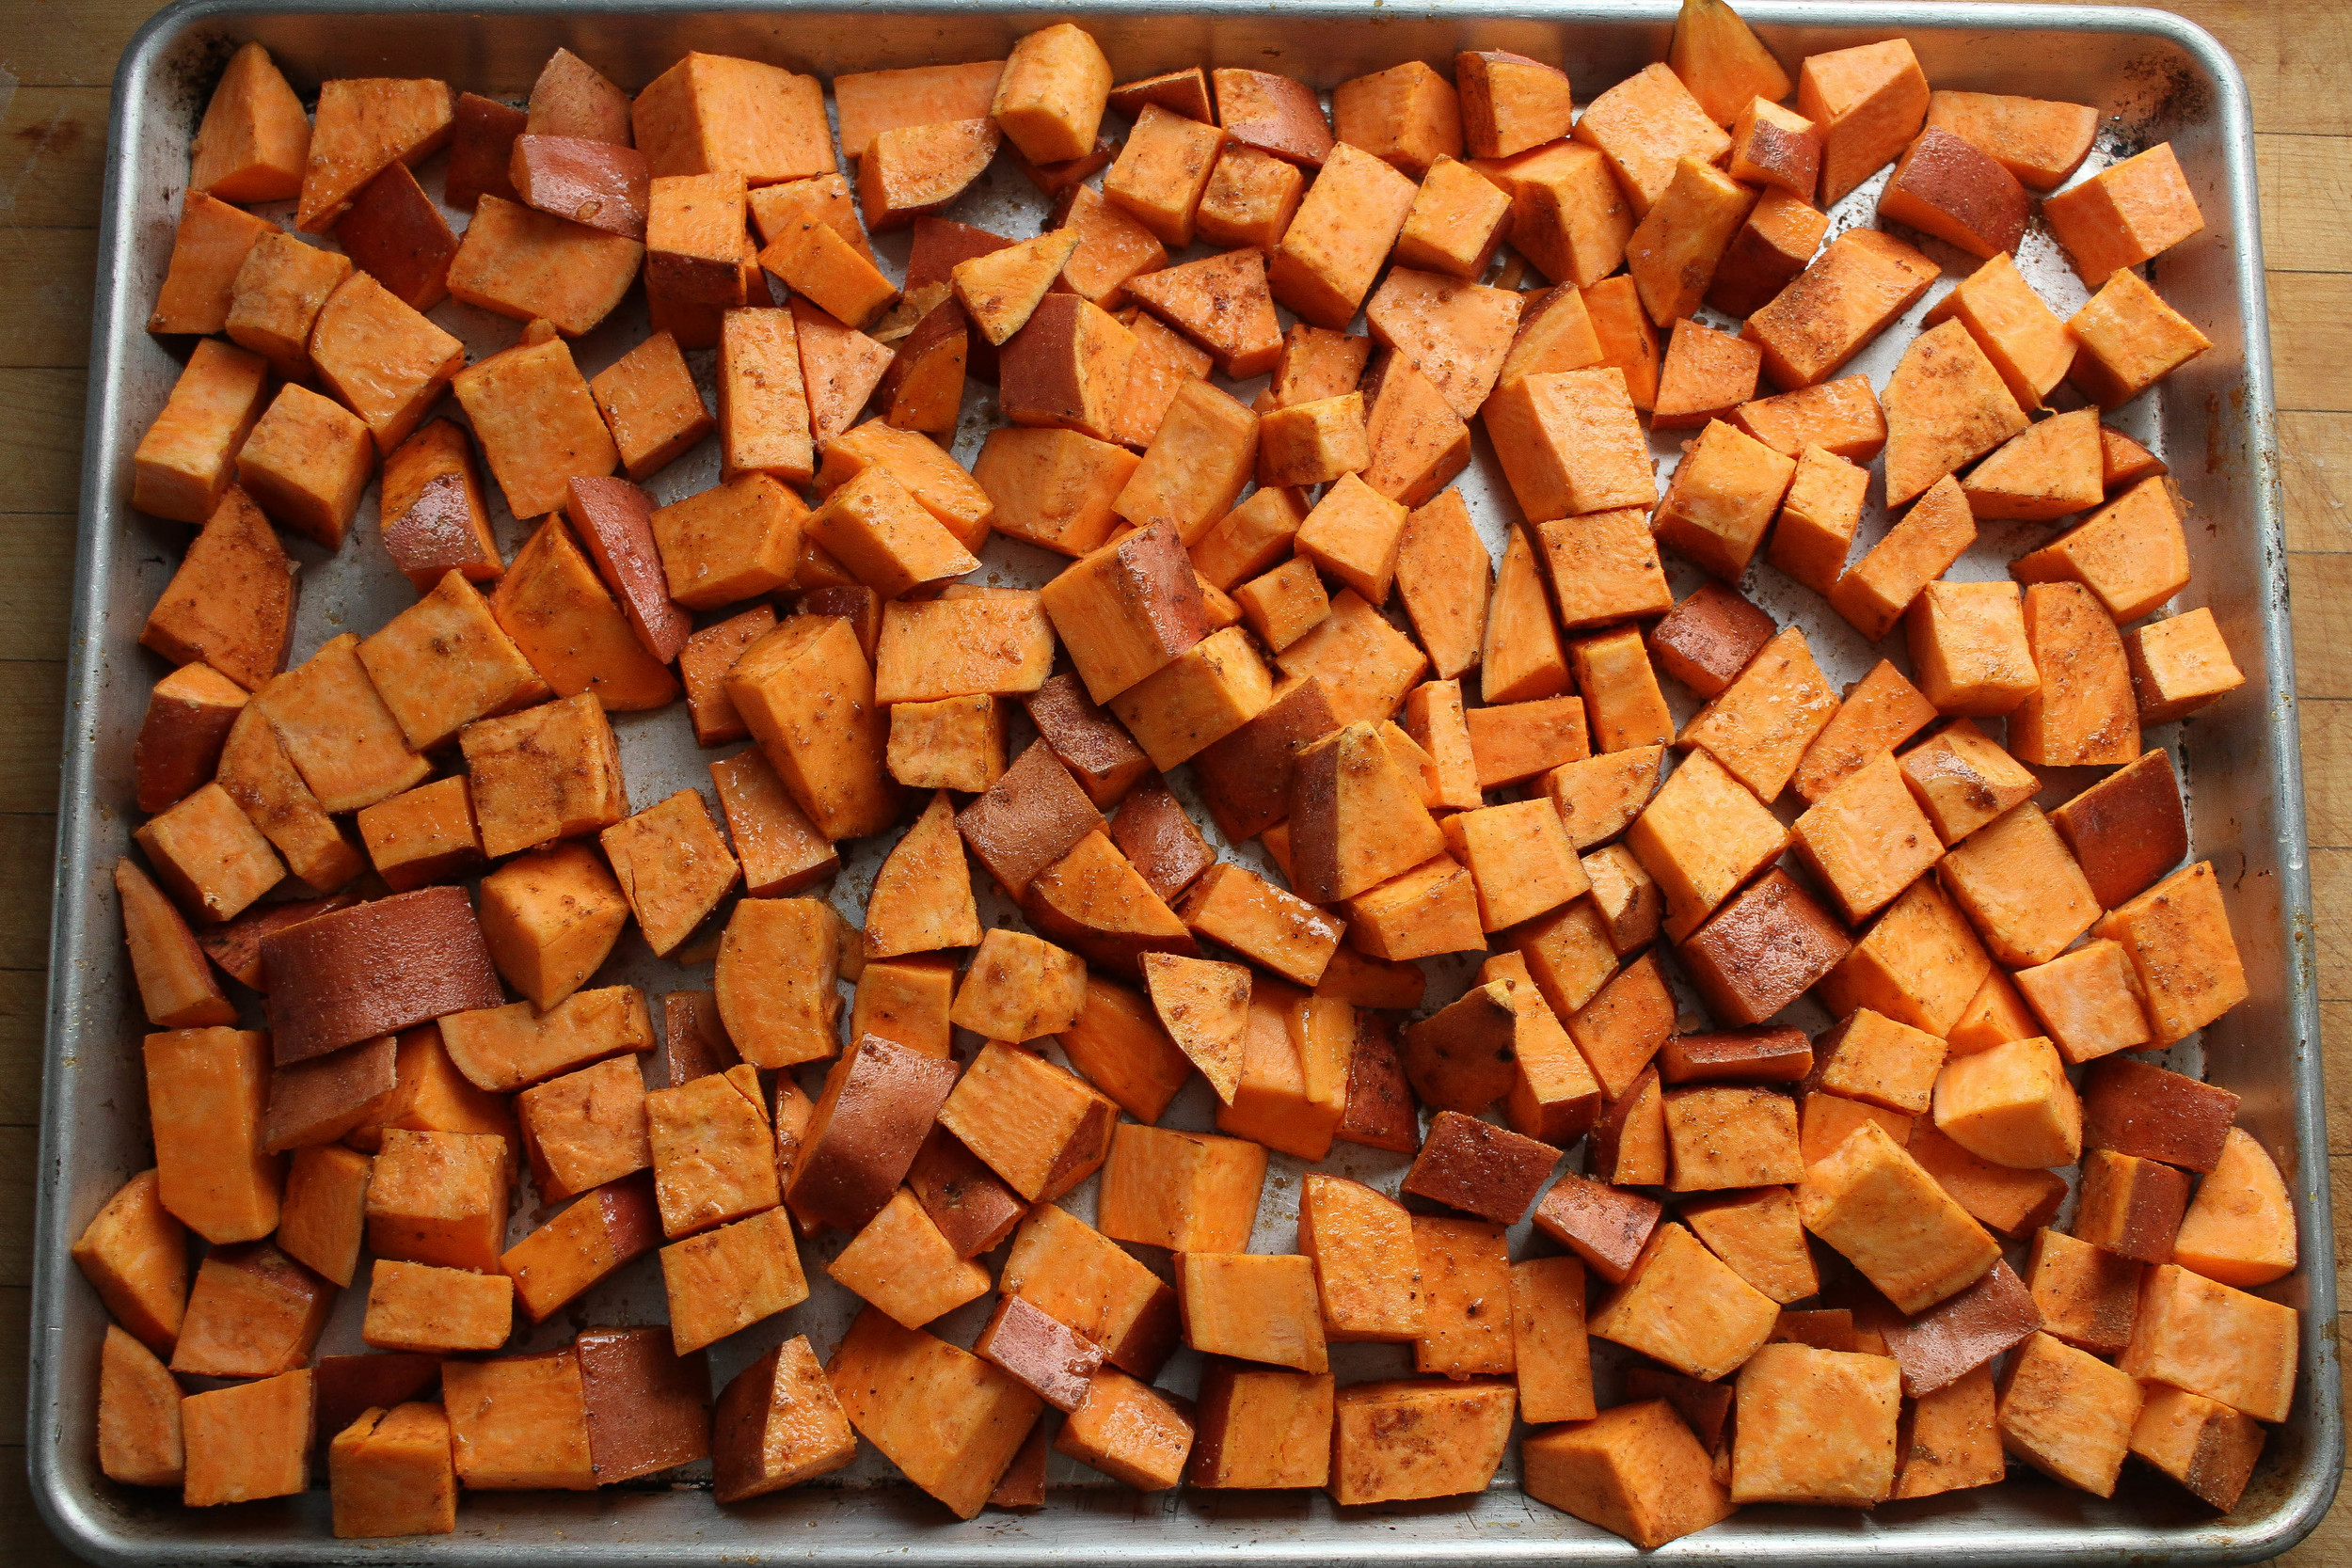 Sweet potatoes are coated and headed to the oven!